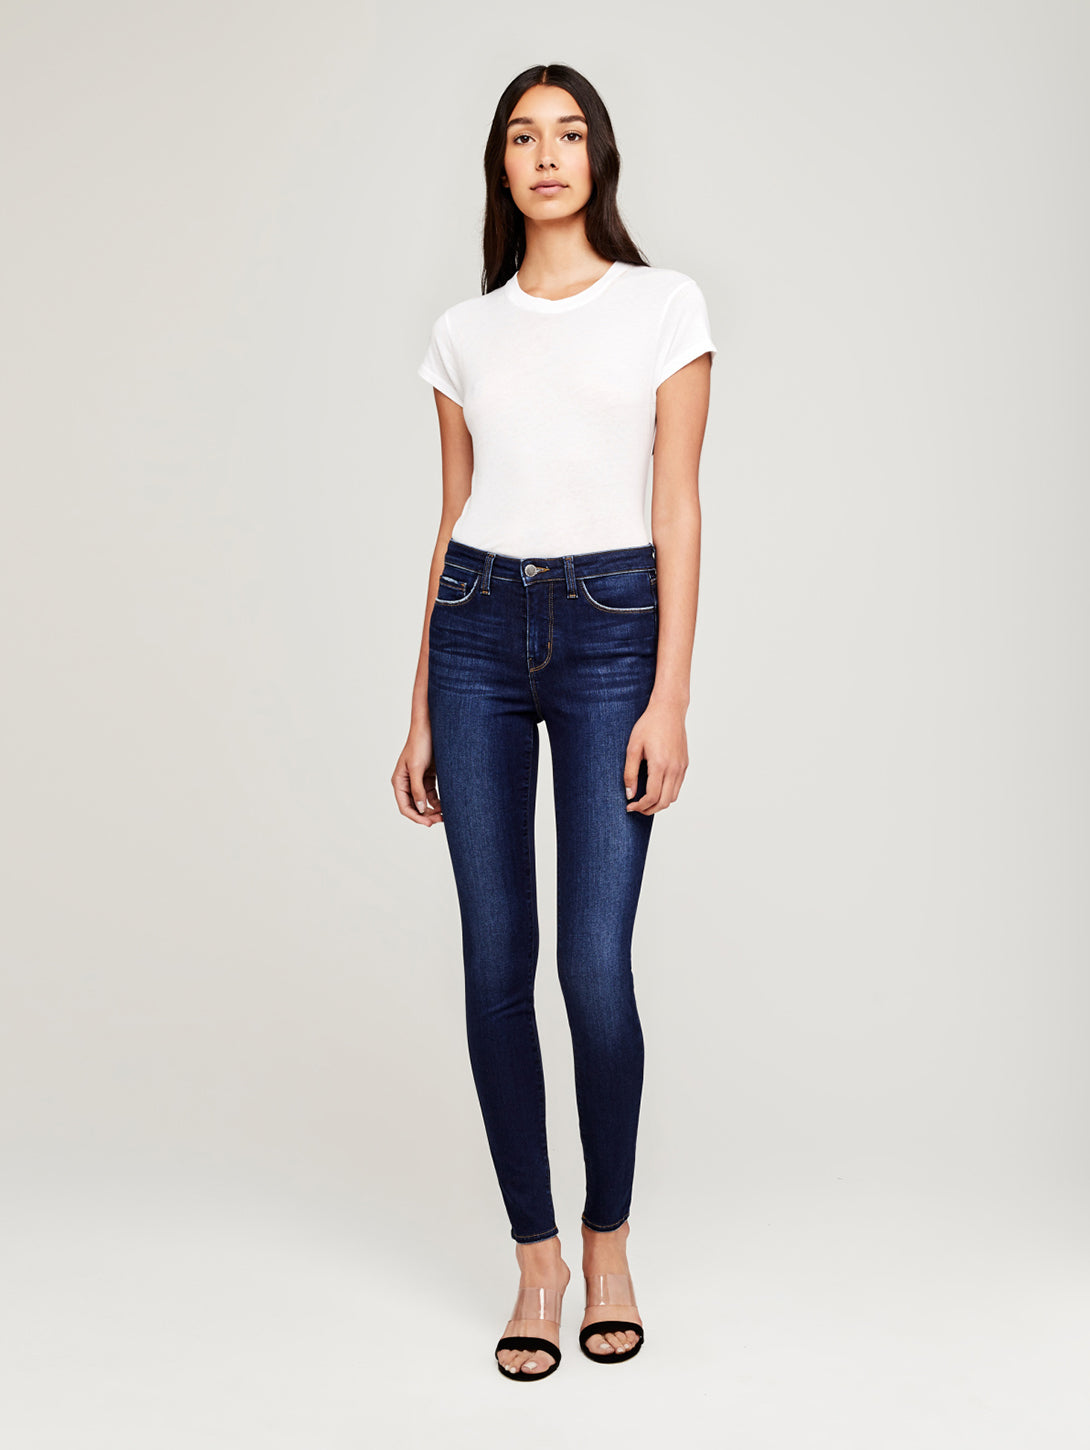 Marguerite High Rise Skinny Jean - Baltic-L'AGENCE-Over the Rainbow